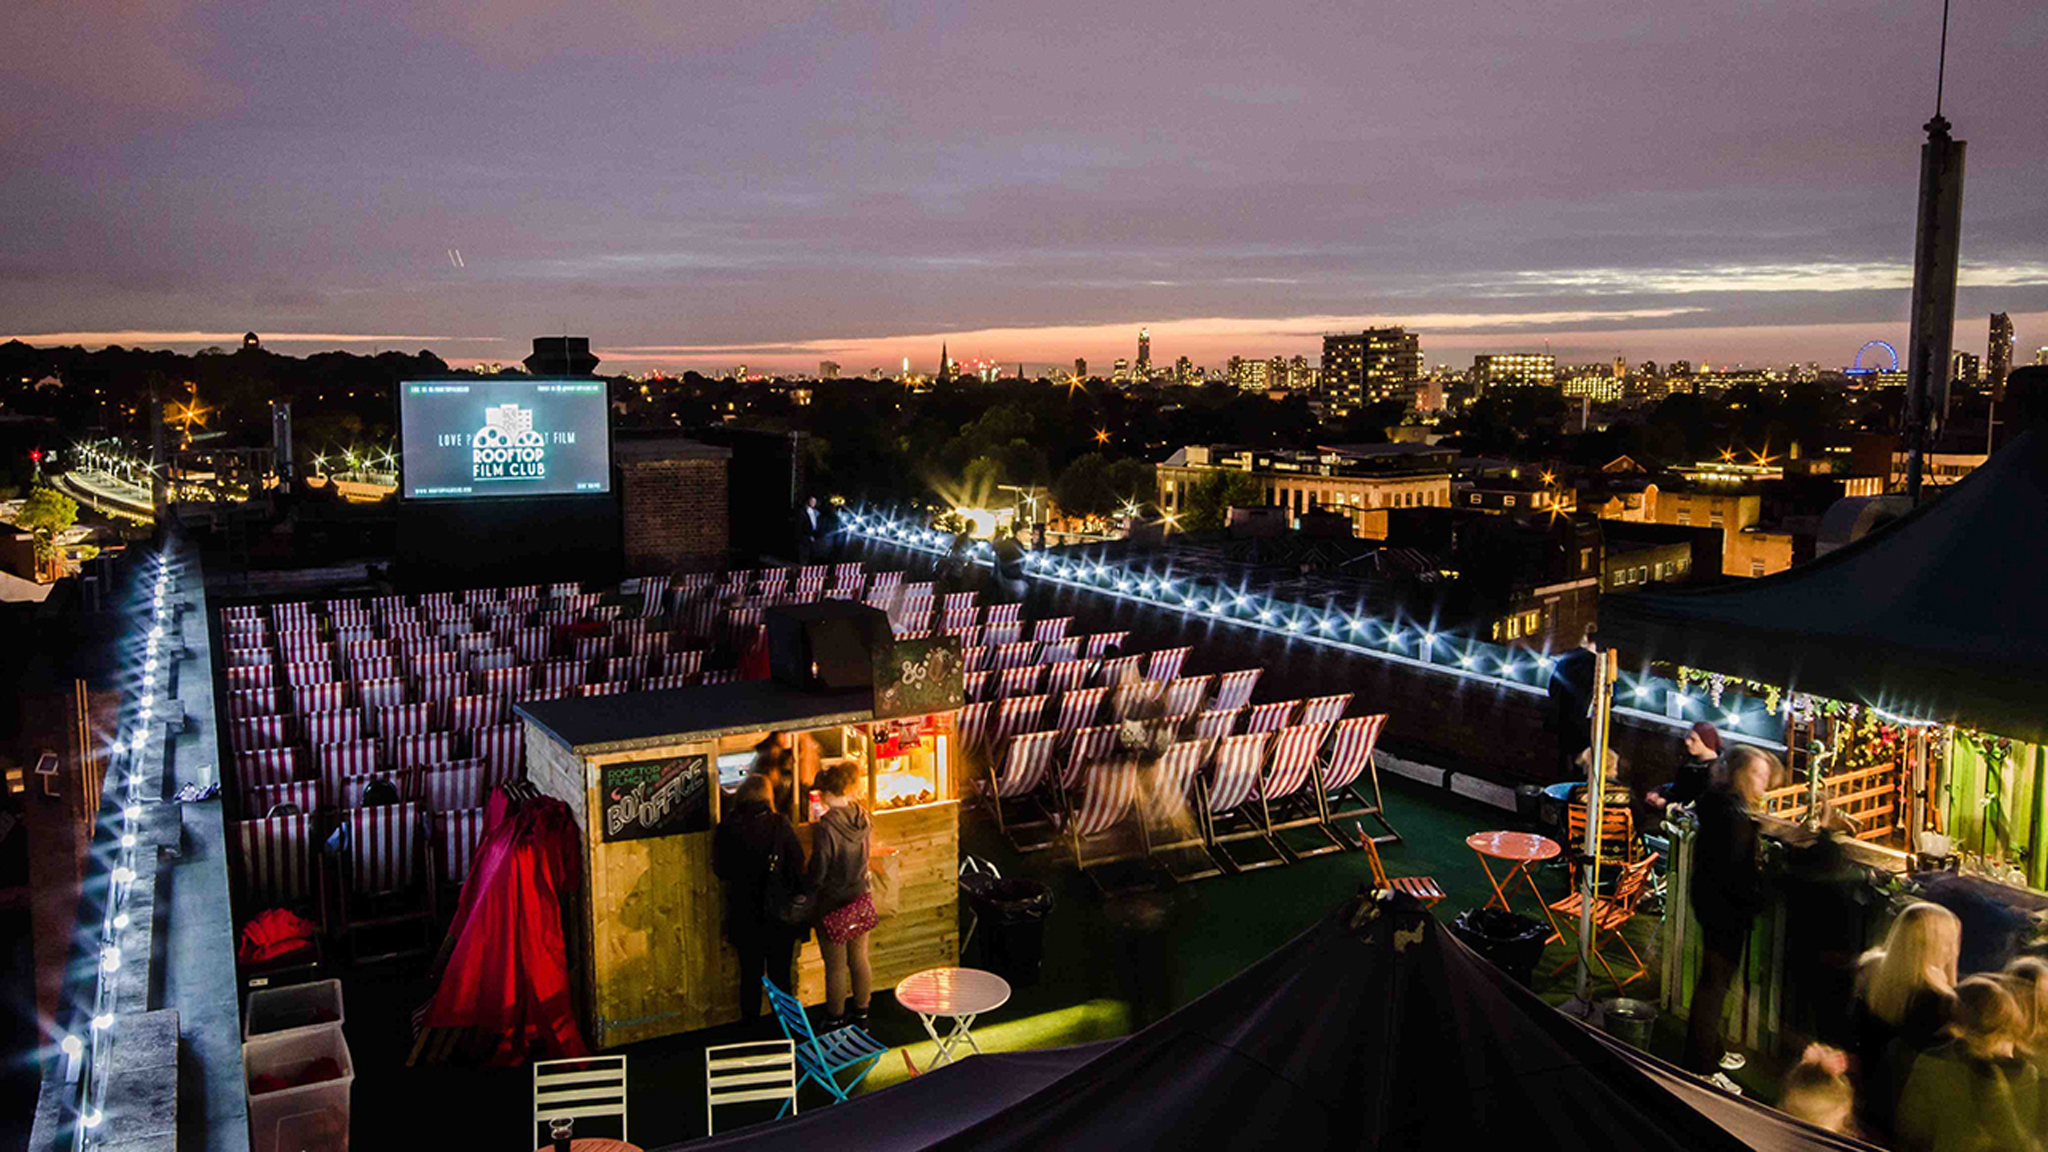 See a film under the stars